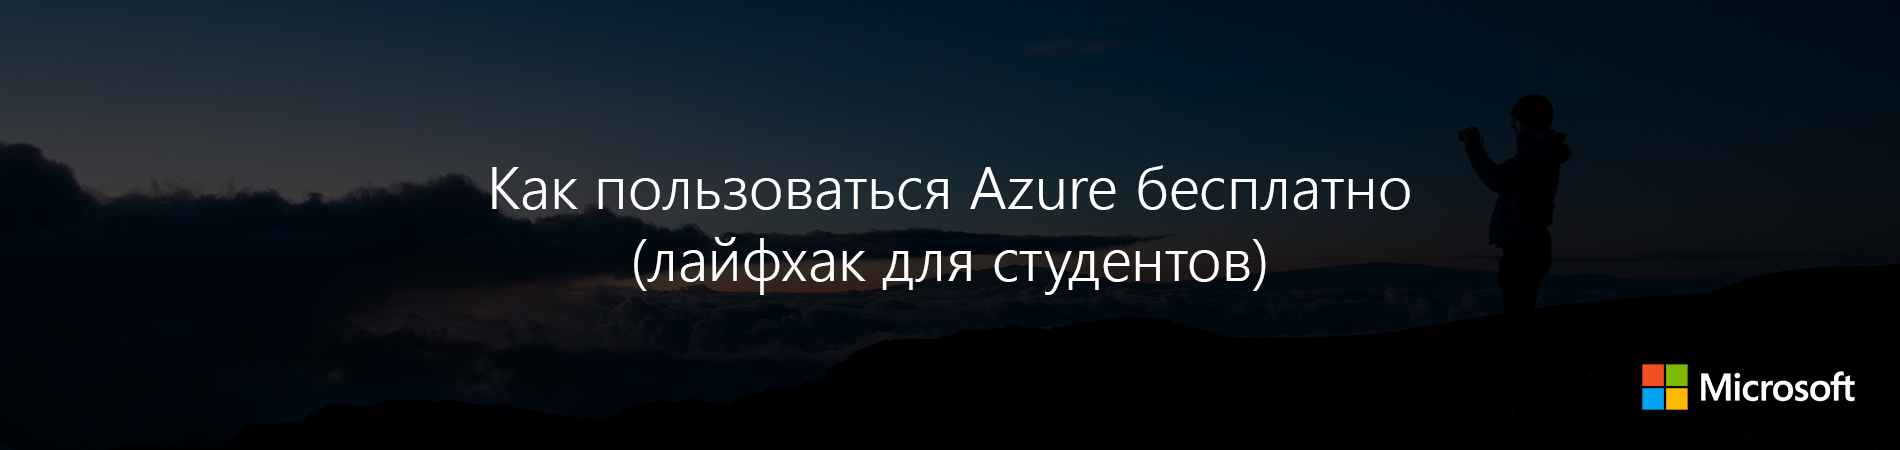 How to use Azure for free (lifhak for students)